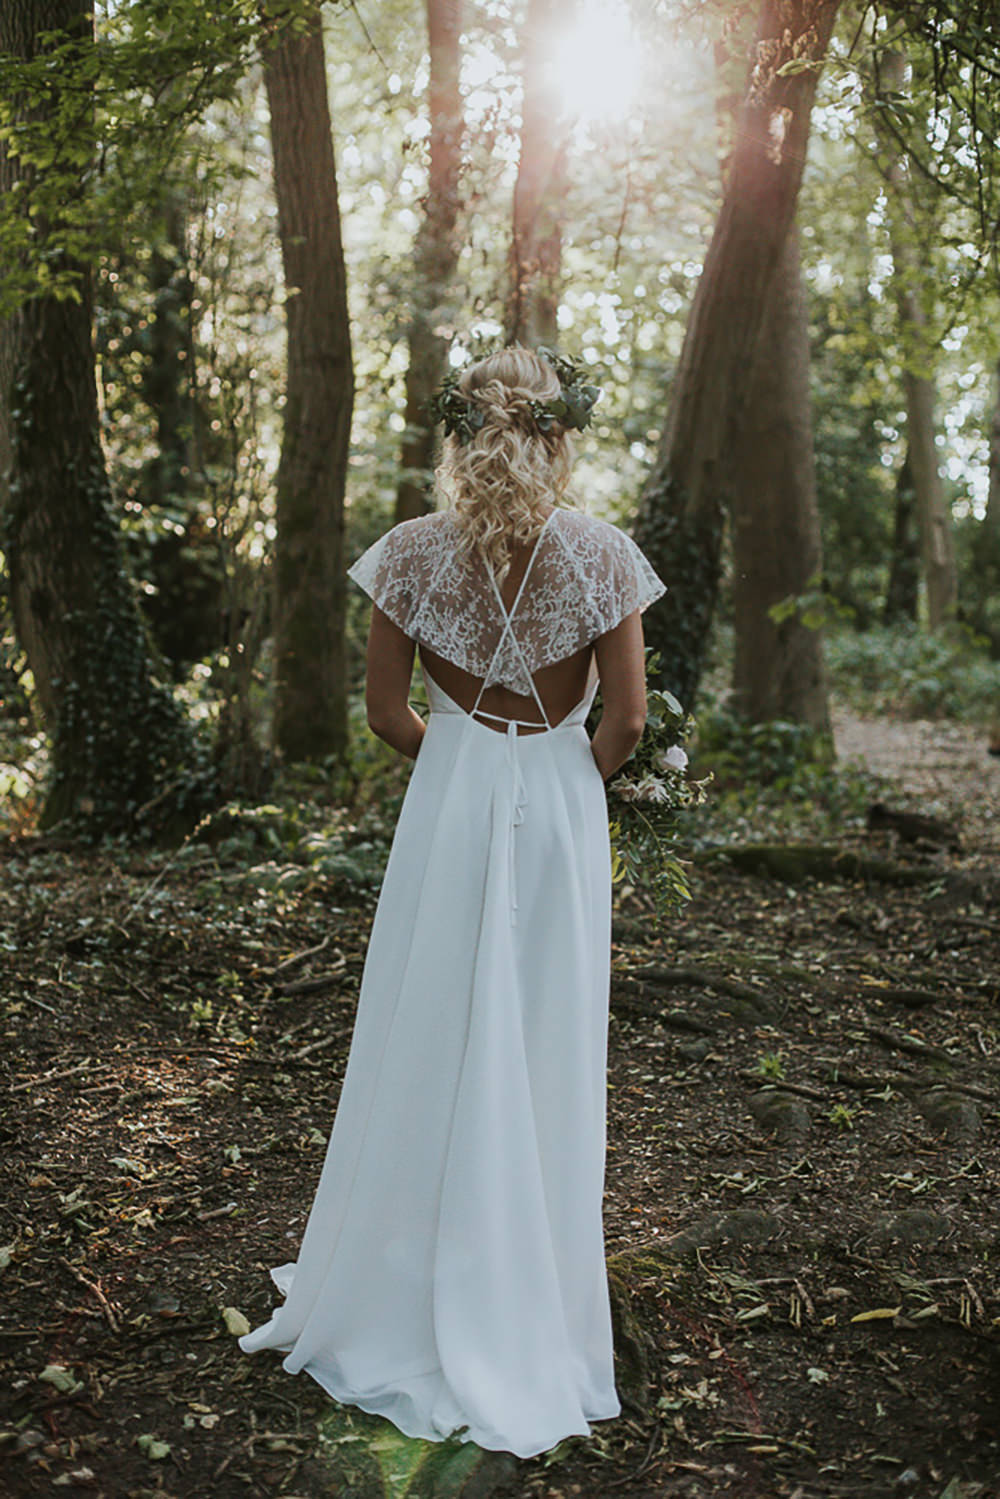 Dress Gown Bride Bridal French Chantilly Lace Silk Georgettes Tulle Sleeves Cape Modern Bohemian Woodland Wedding Ideas Lily Lane Photography